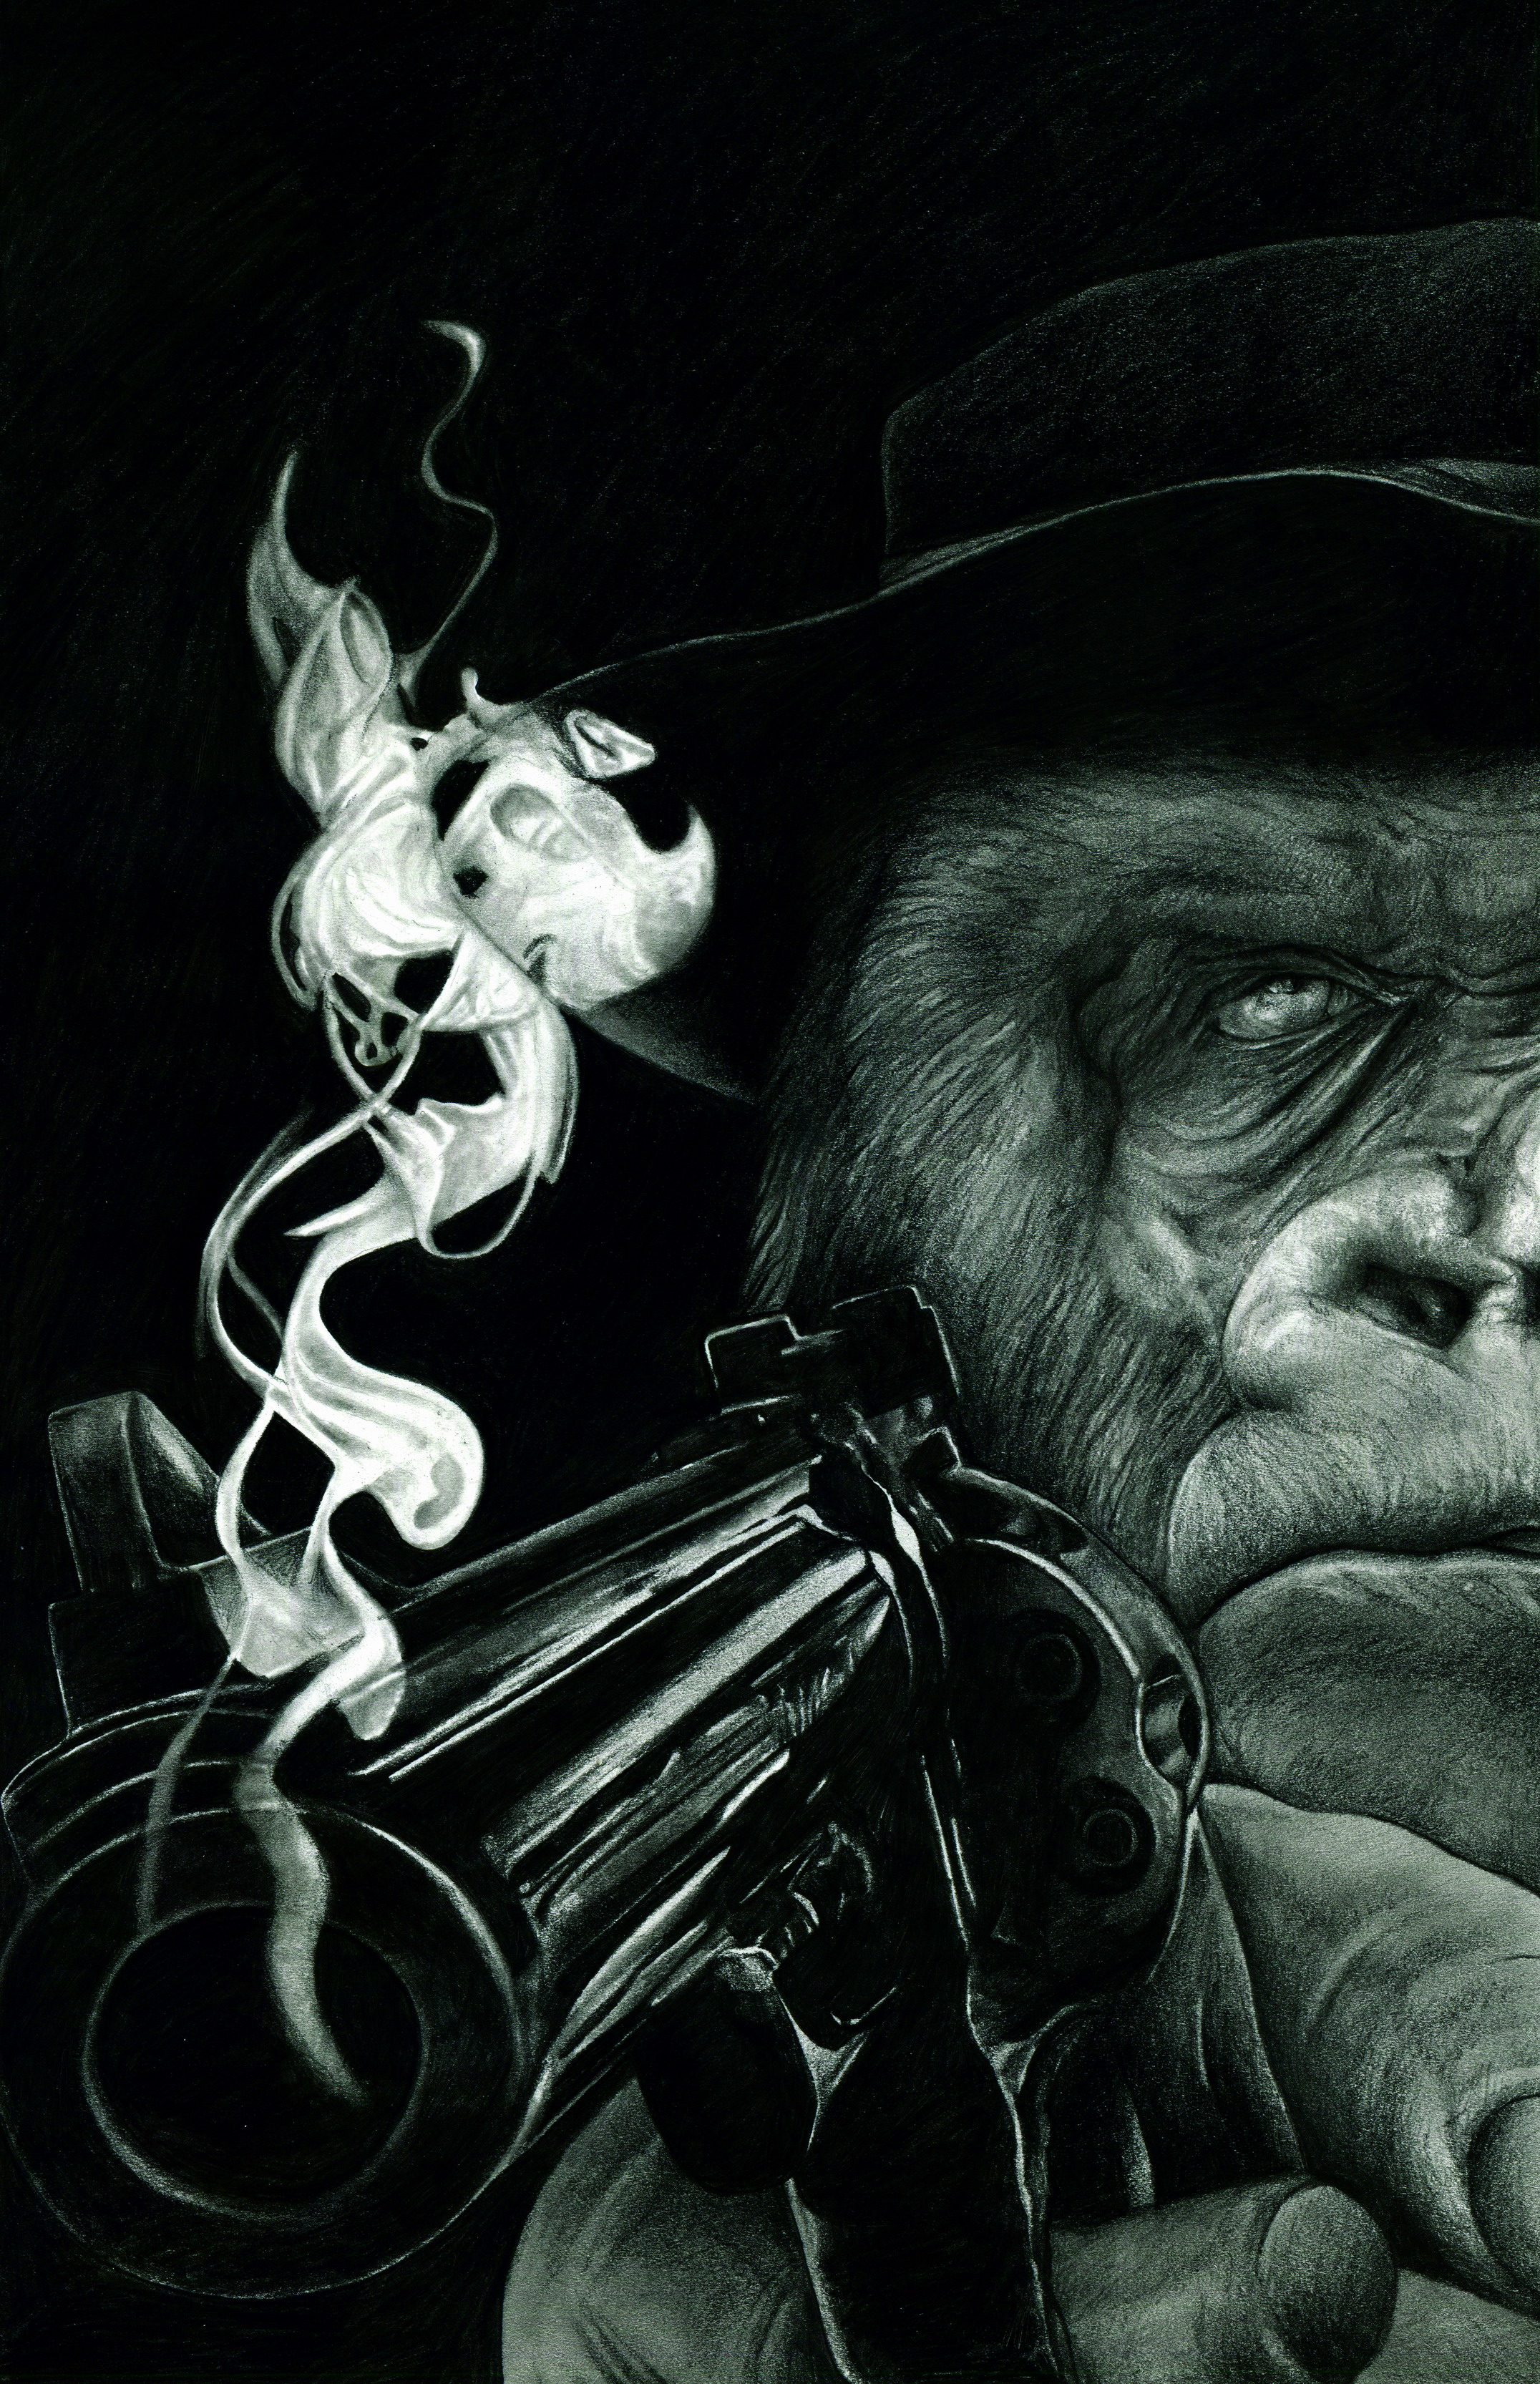 SIX-GUN GORILLA Graphic Novel